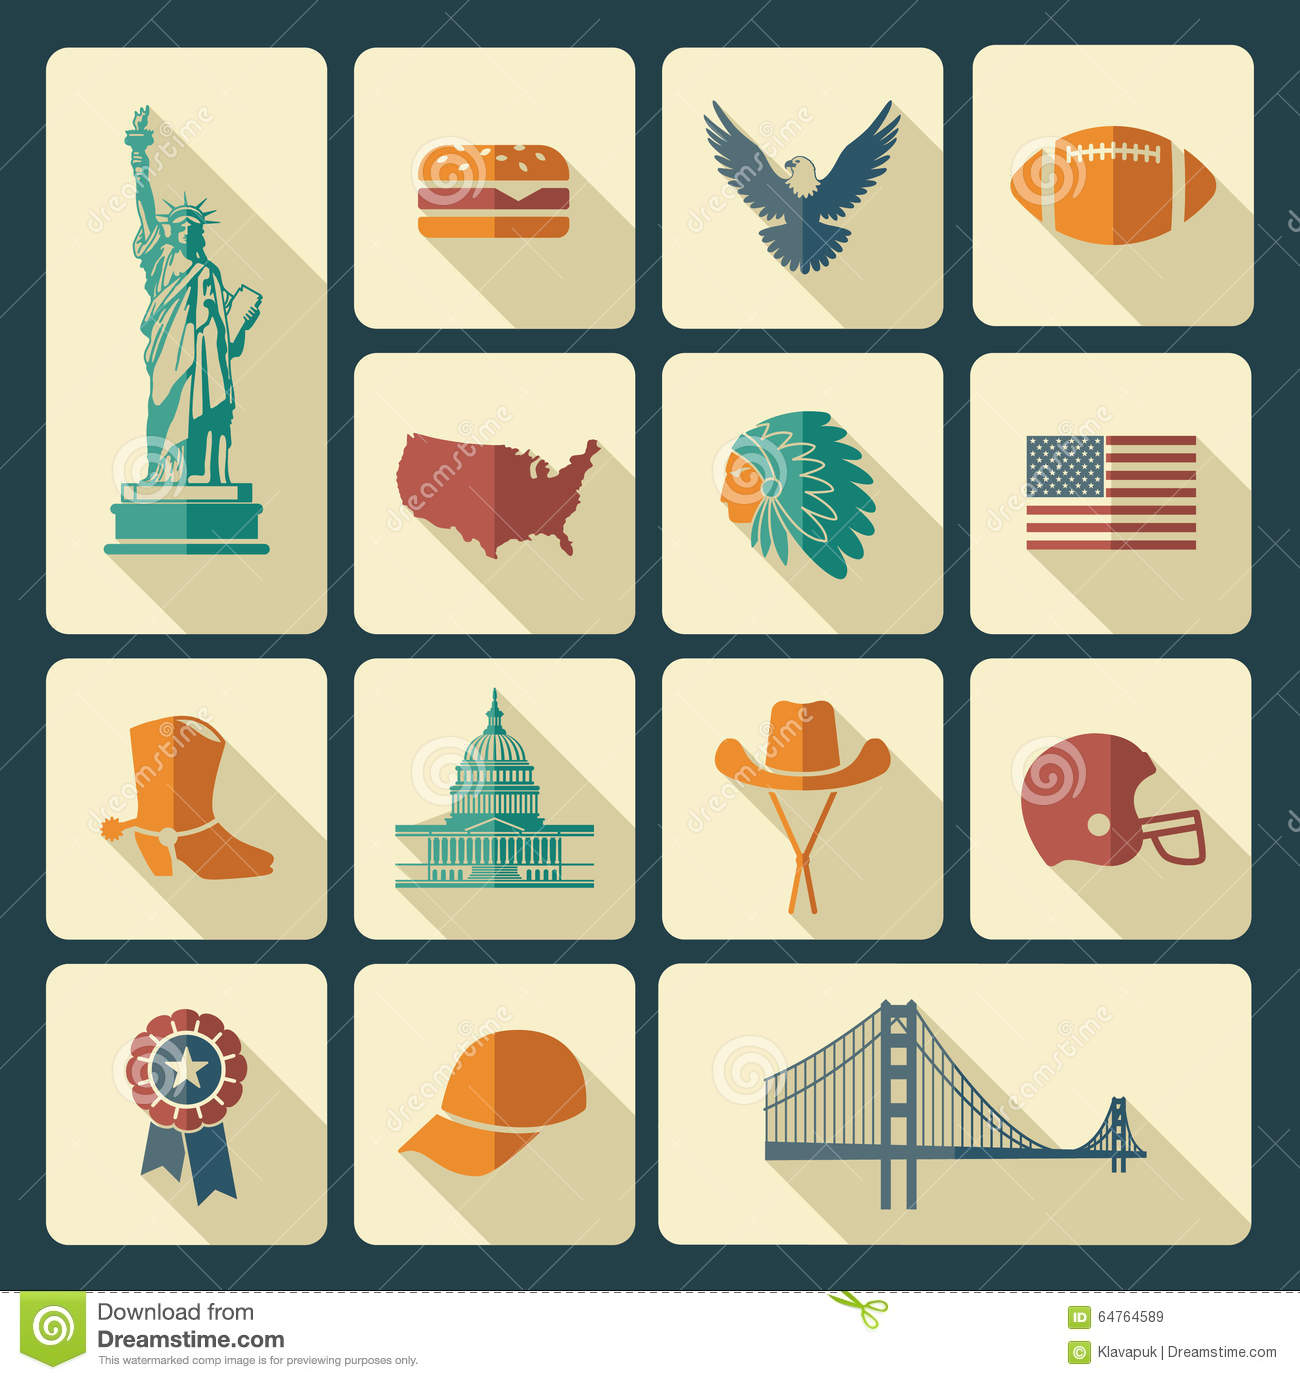 Symbols Of The Usa Stock Vector Illustration Of American 64764589